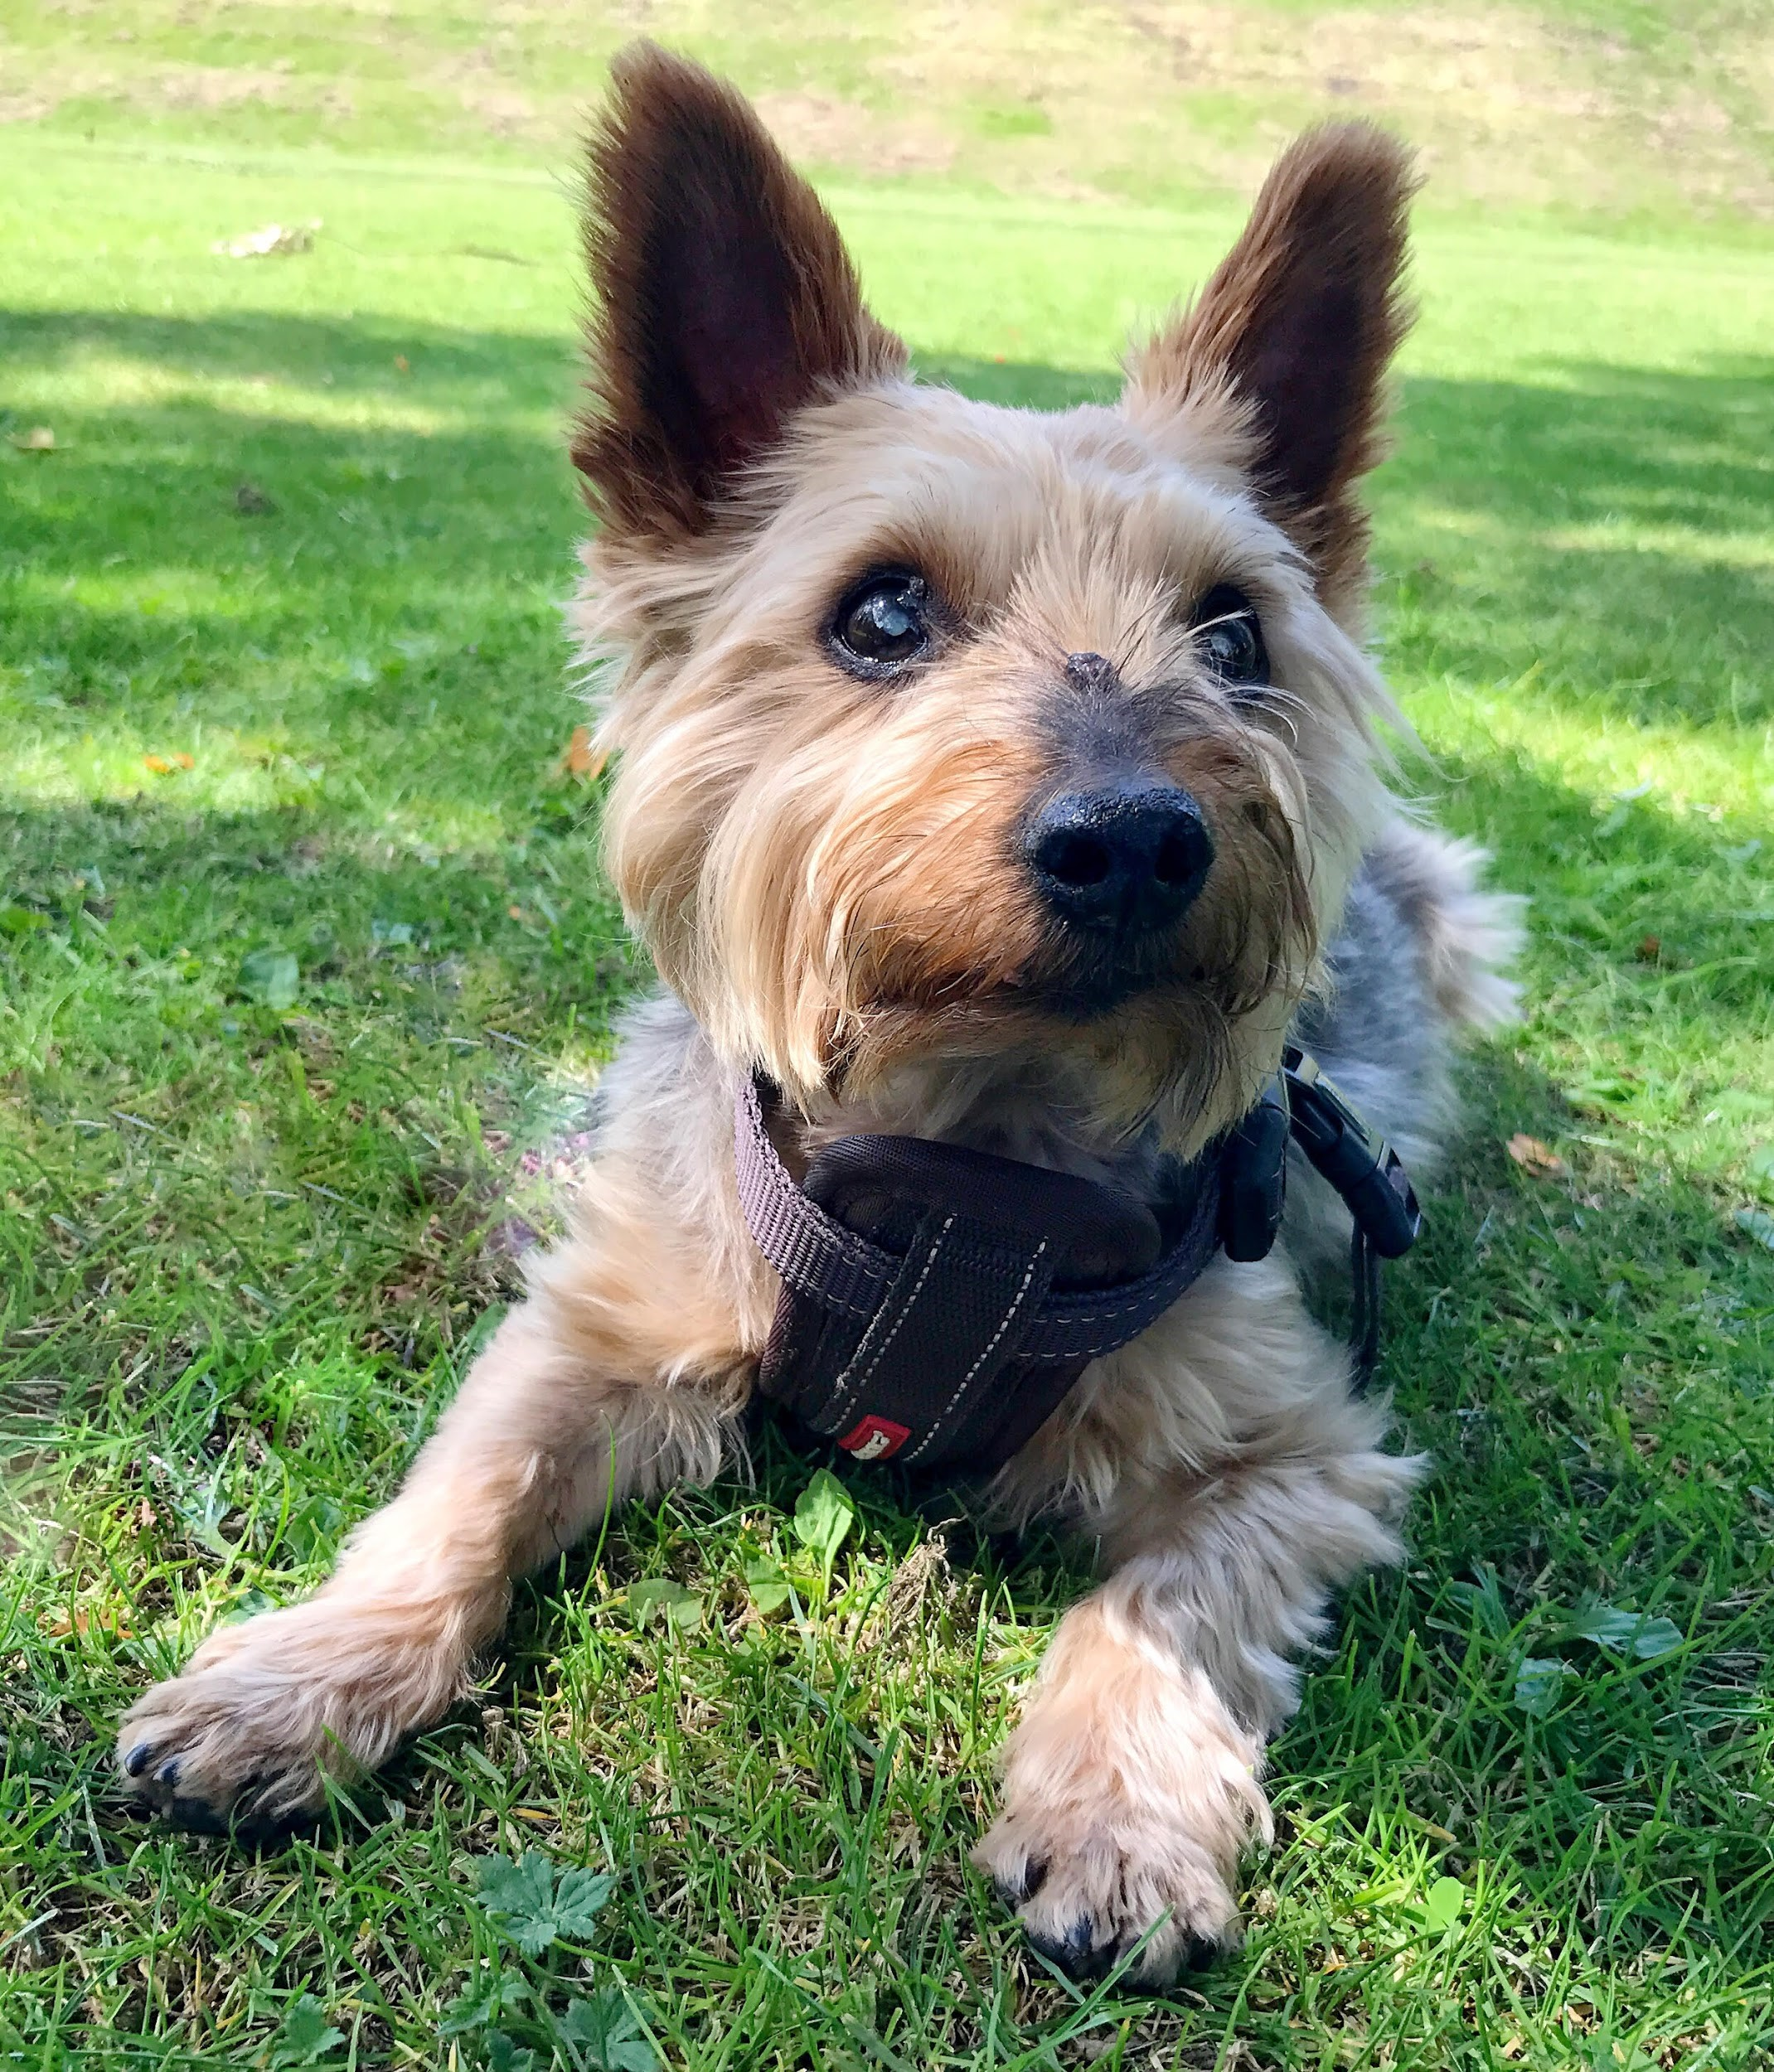 Image of a brown and black yorkshire terrier lying on the grass looking into the camera